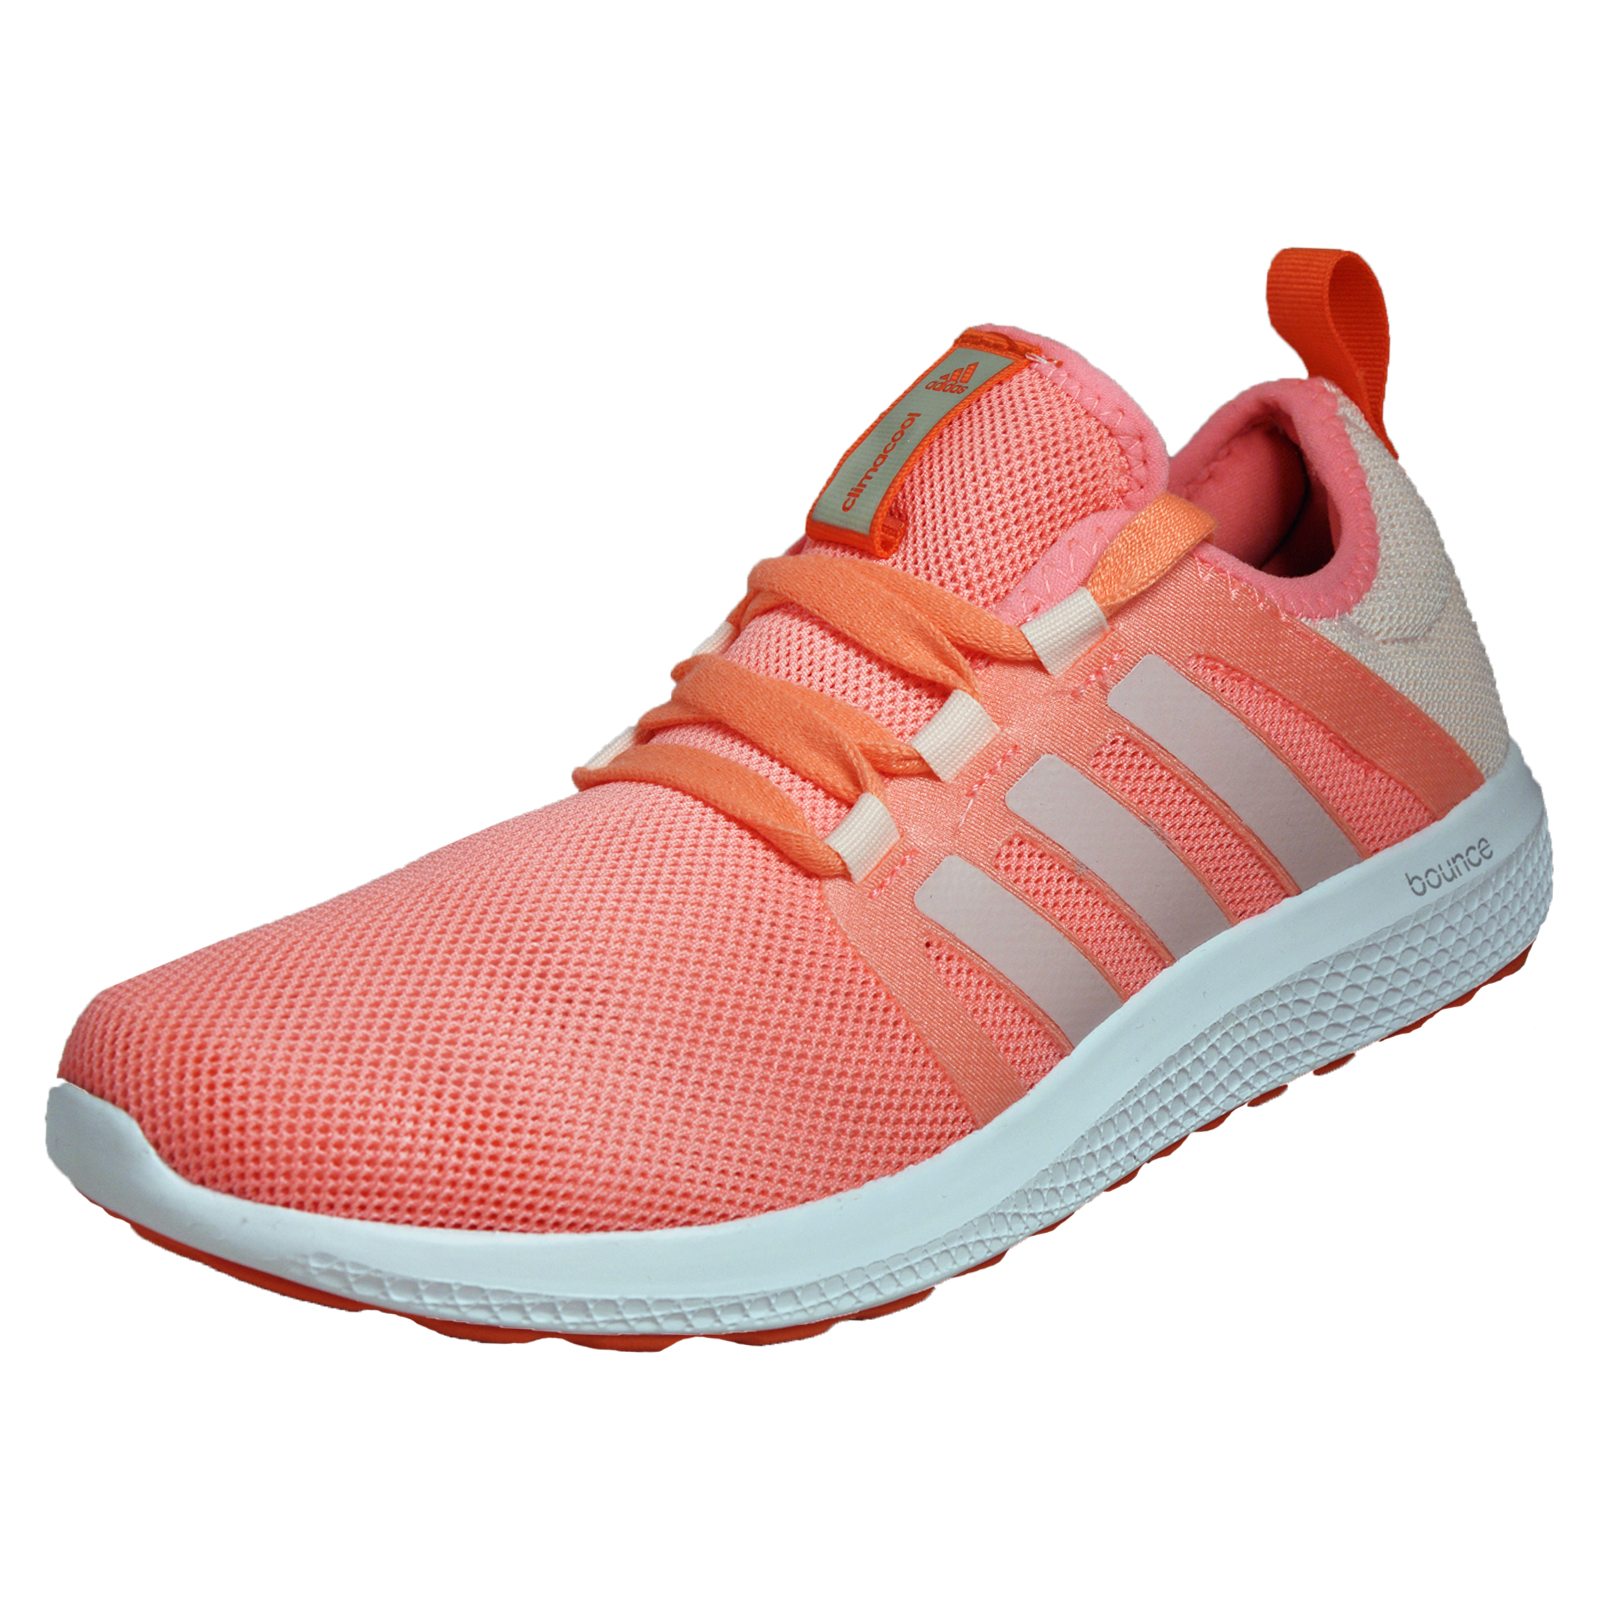 Adidas Climacool Cc Fresh Bounce Womens Running Shoes Fitness Trainers Peach